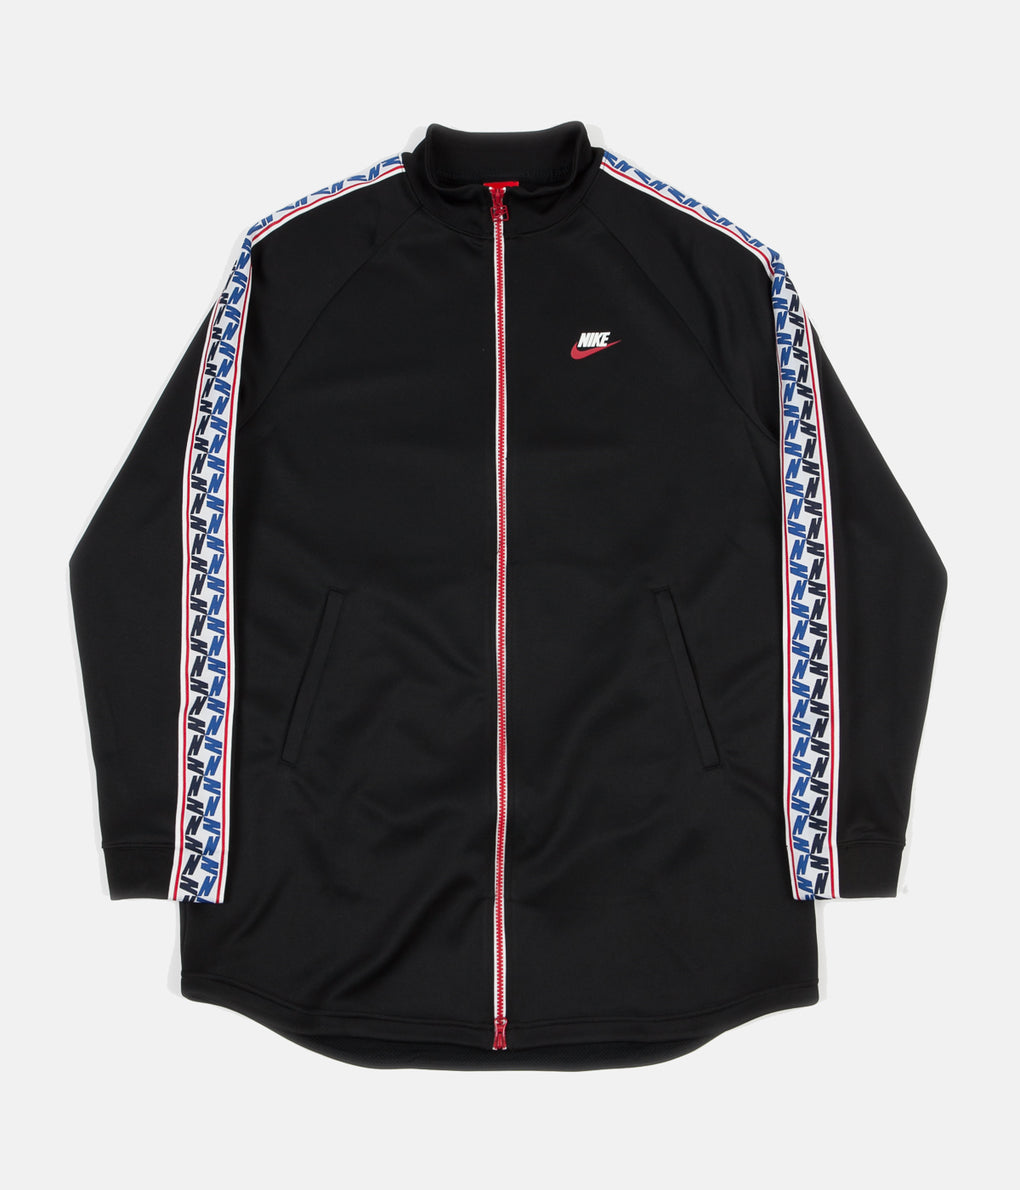 Nike Taped Poly Track Jacket - Black / Gym Red / Sail